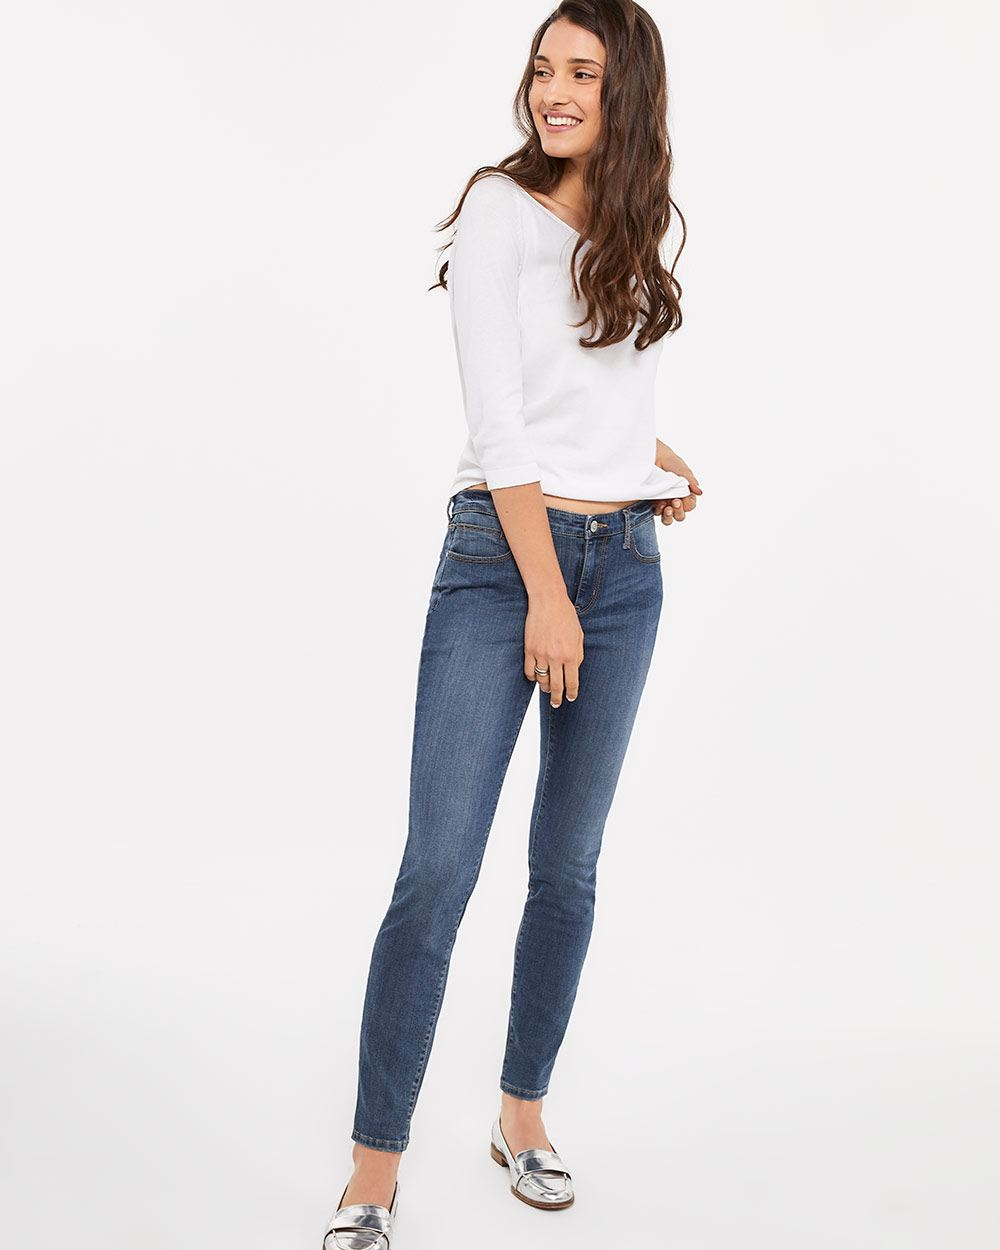 dfddaf95f916 The Signature Soft Tall Skinny Jeans | Tall | Reitmans